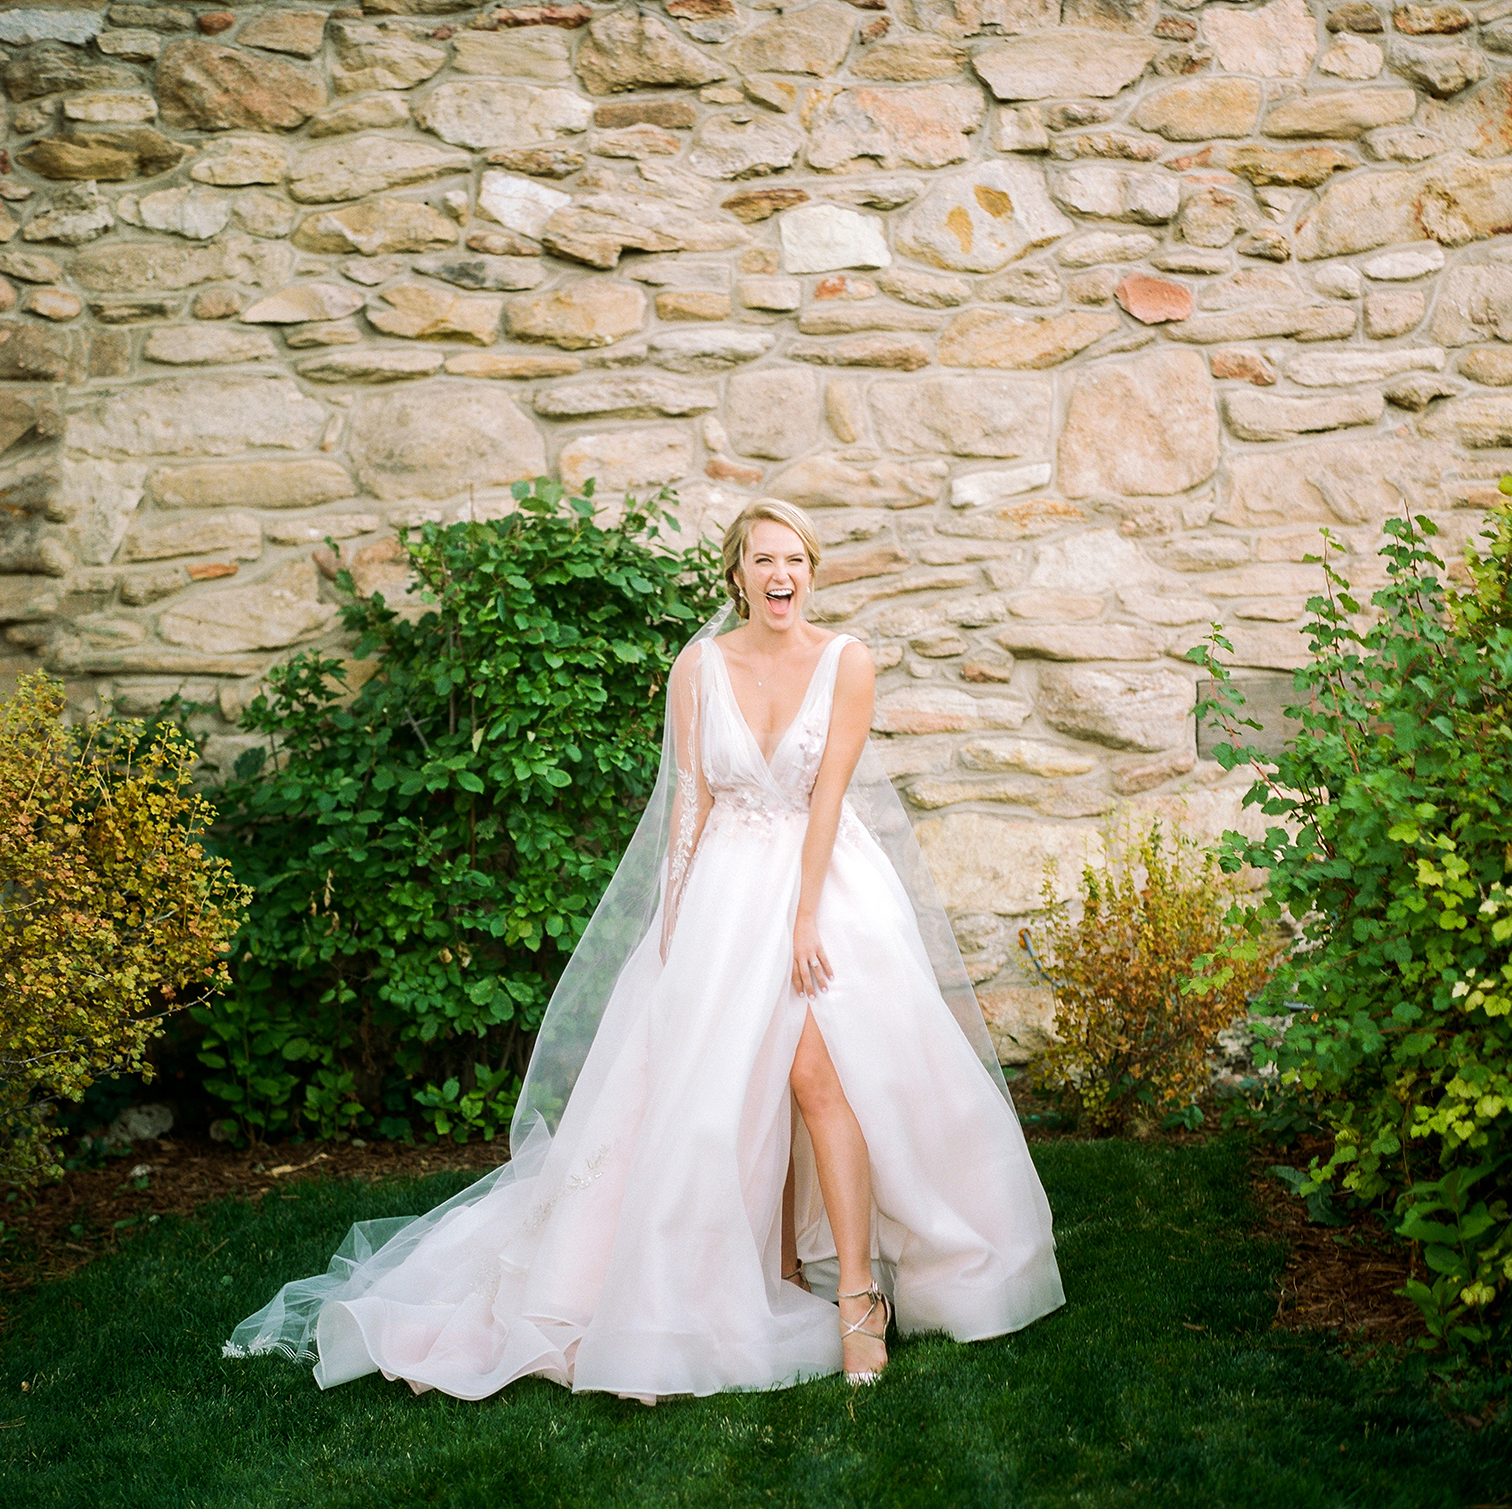 Wedding Photographers Colorado, Bride Laughing, First Look with Bride and Groom, Denver weddings, Wedding Photography